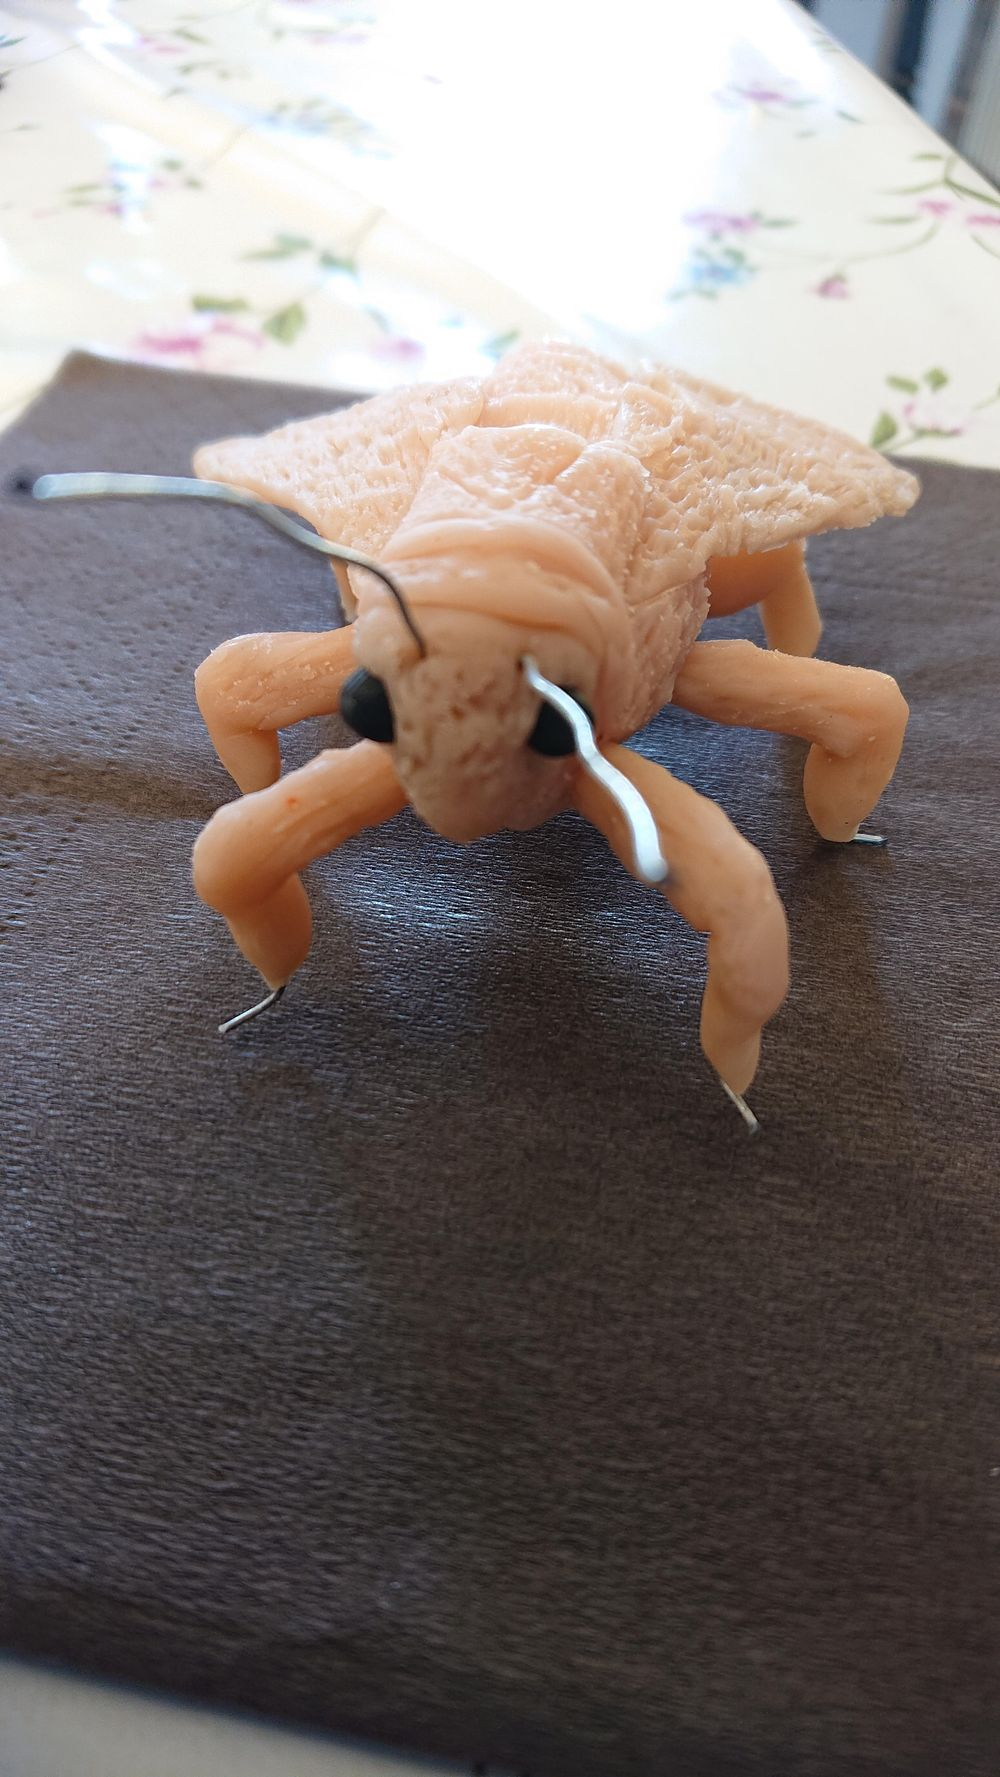 Unpainted Moth - image 1 - student project